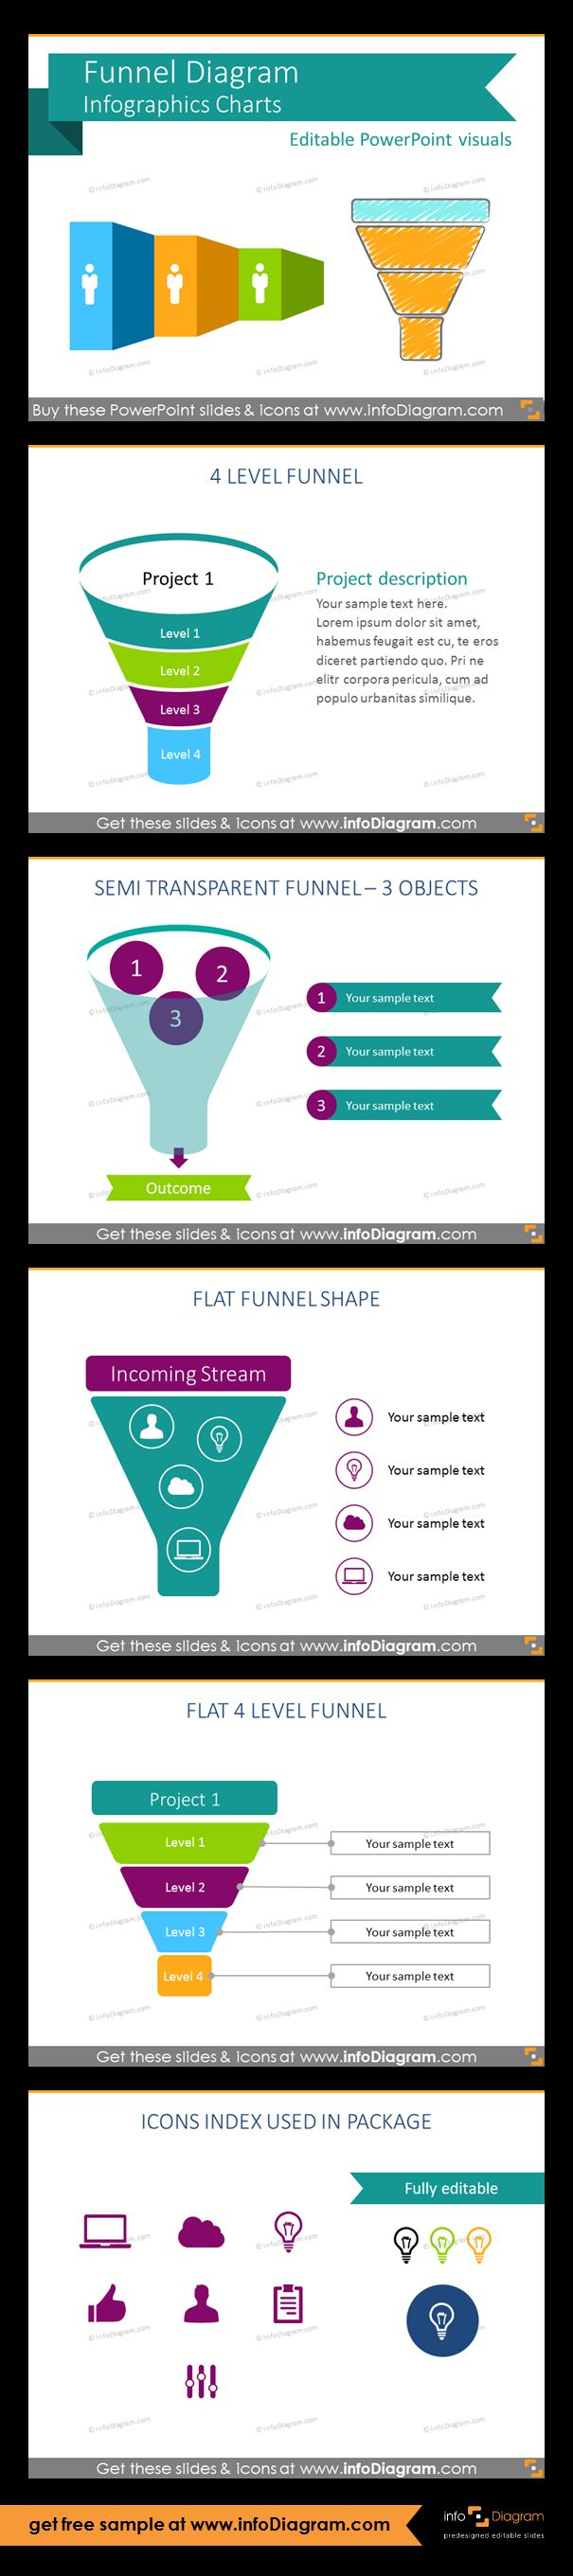 Predesigned Infographics shapes for showing various funnel processes on a slide. Suitable especially for marketing, sales and business development presentations. Semi transparent marketing funnel for 3 objects, flat funnel 2 colors shape for project planning, colored 4-level sales funnel, set of flat icon symbols for infographics: cloud, computer, bulb, thumbs up, man, document.